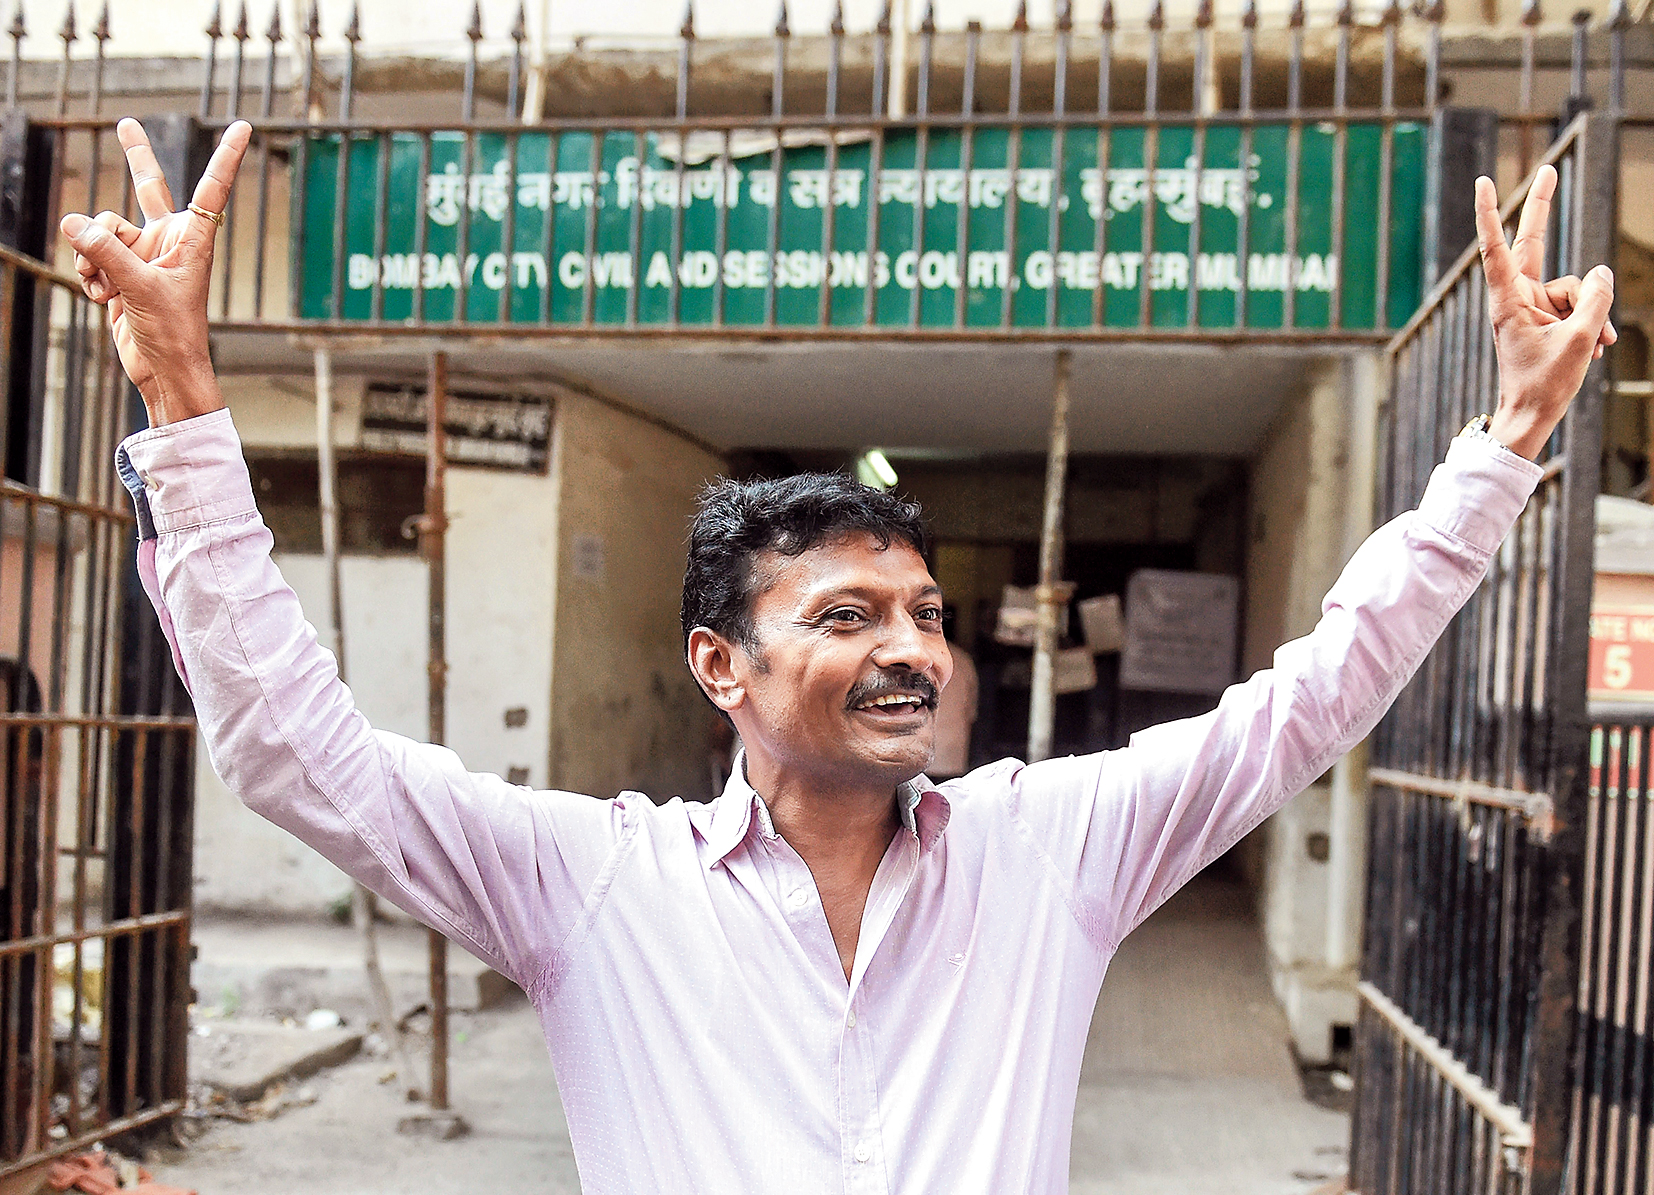 Rajendra Jeerawala, owner of the Gujarat farmhouse where Sohrabuddin Sheikh and his wife were allegedly kept in illegal detention before they were killed, celebrates outside the special CBI court in Mumbai after he was acquitted.